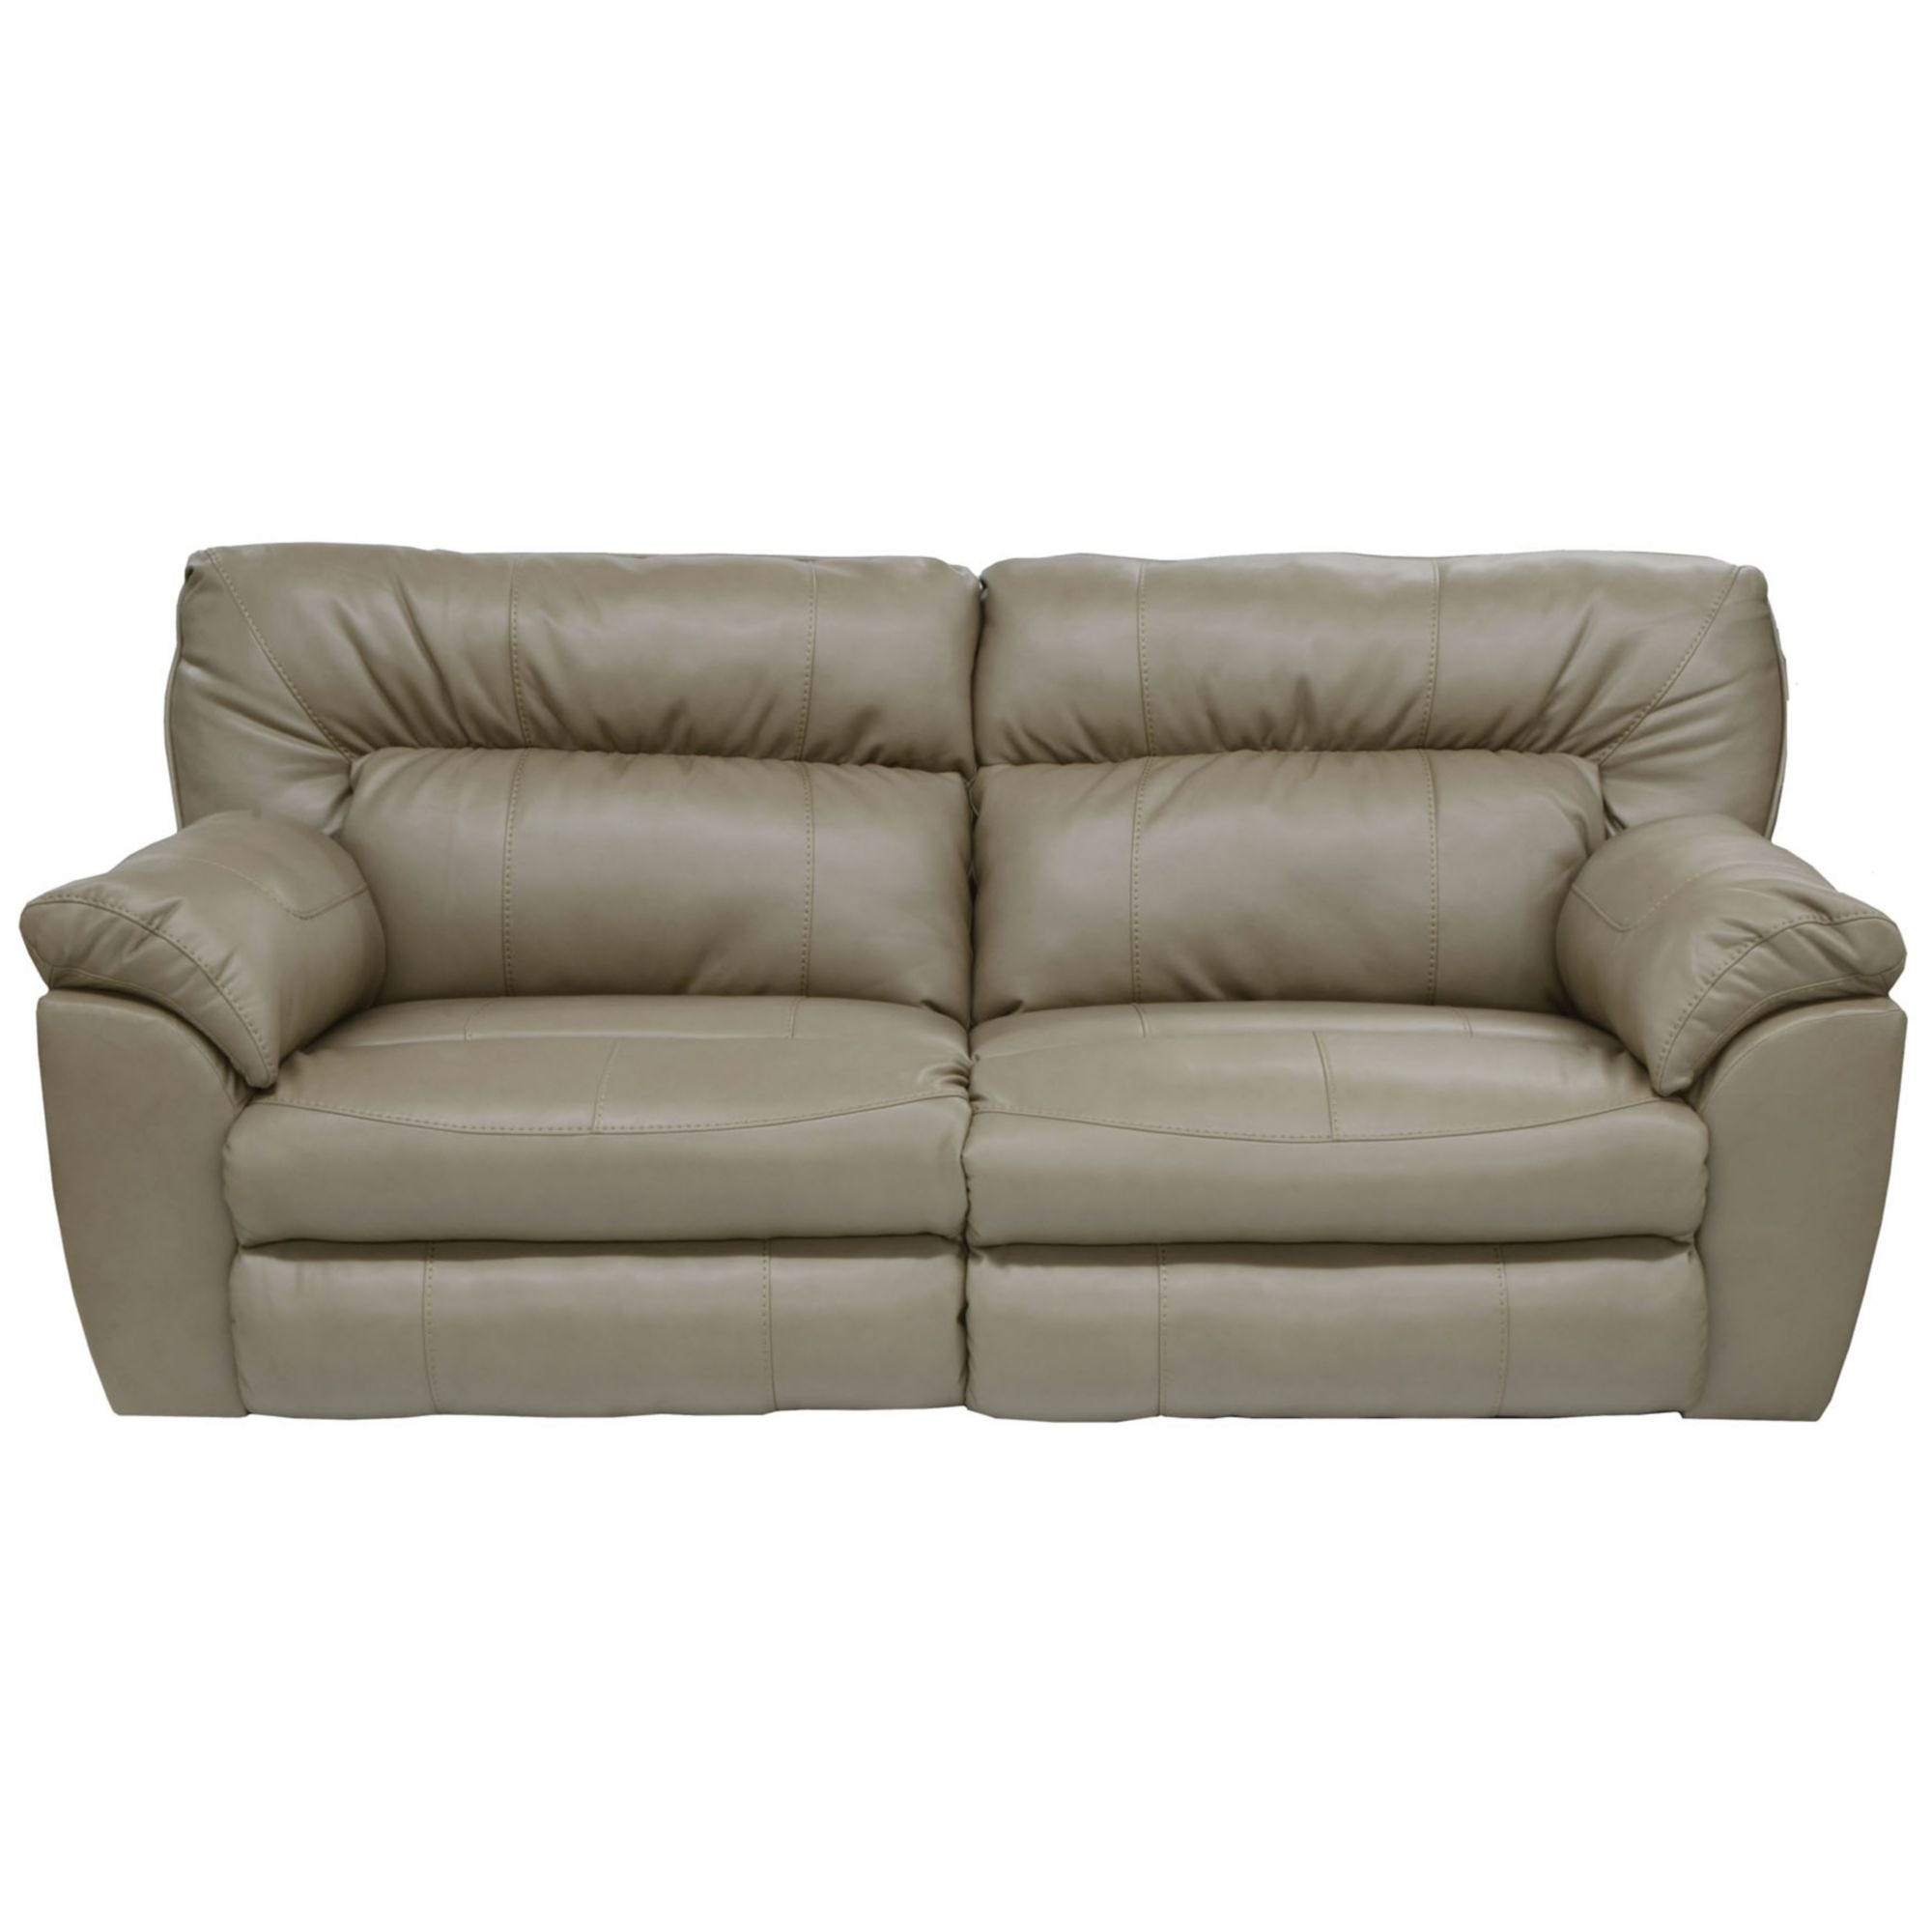 Oversized Recliner US Mattress